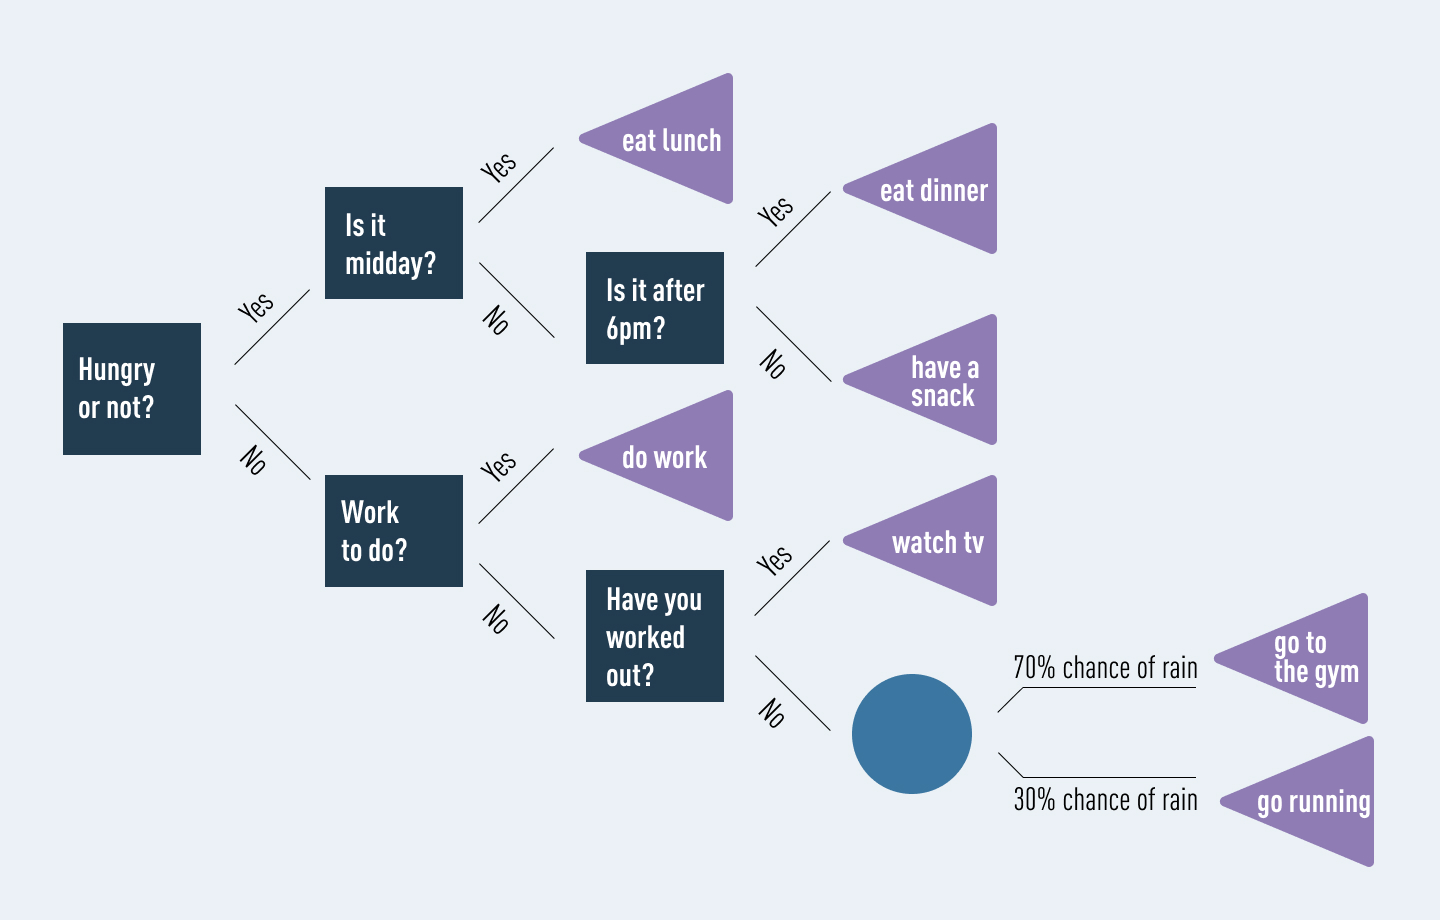 An example of a decision tree showing the possible outcomes you might follow based on whether or not you are hungry